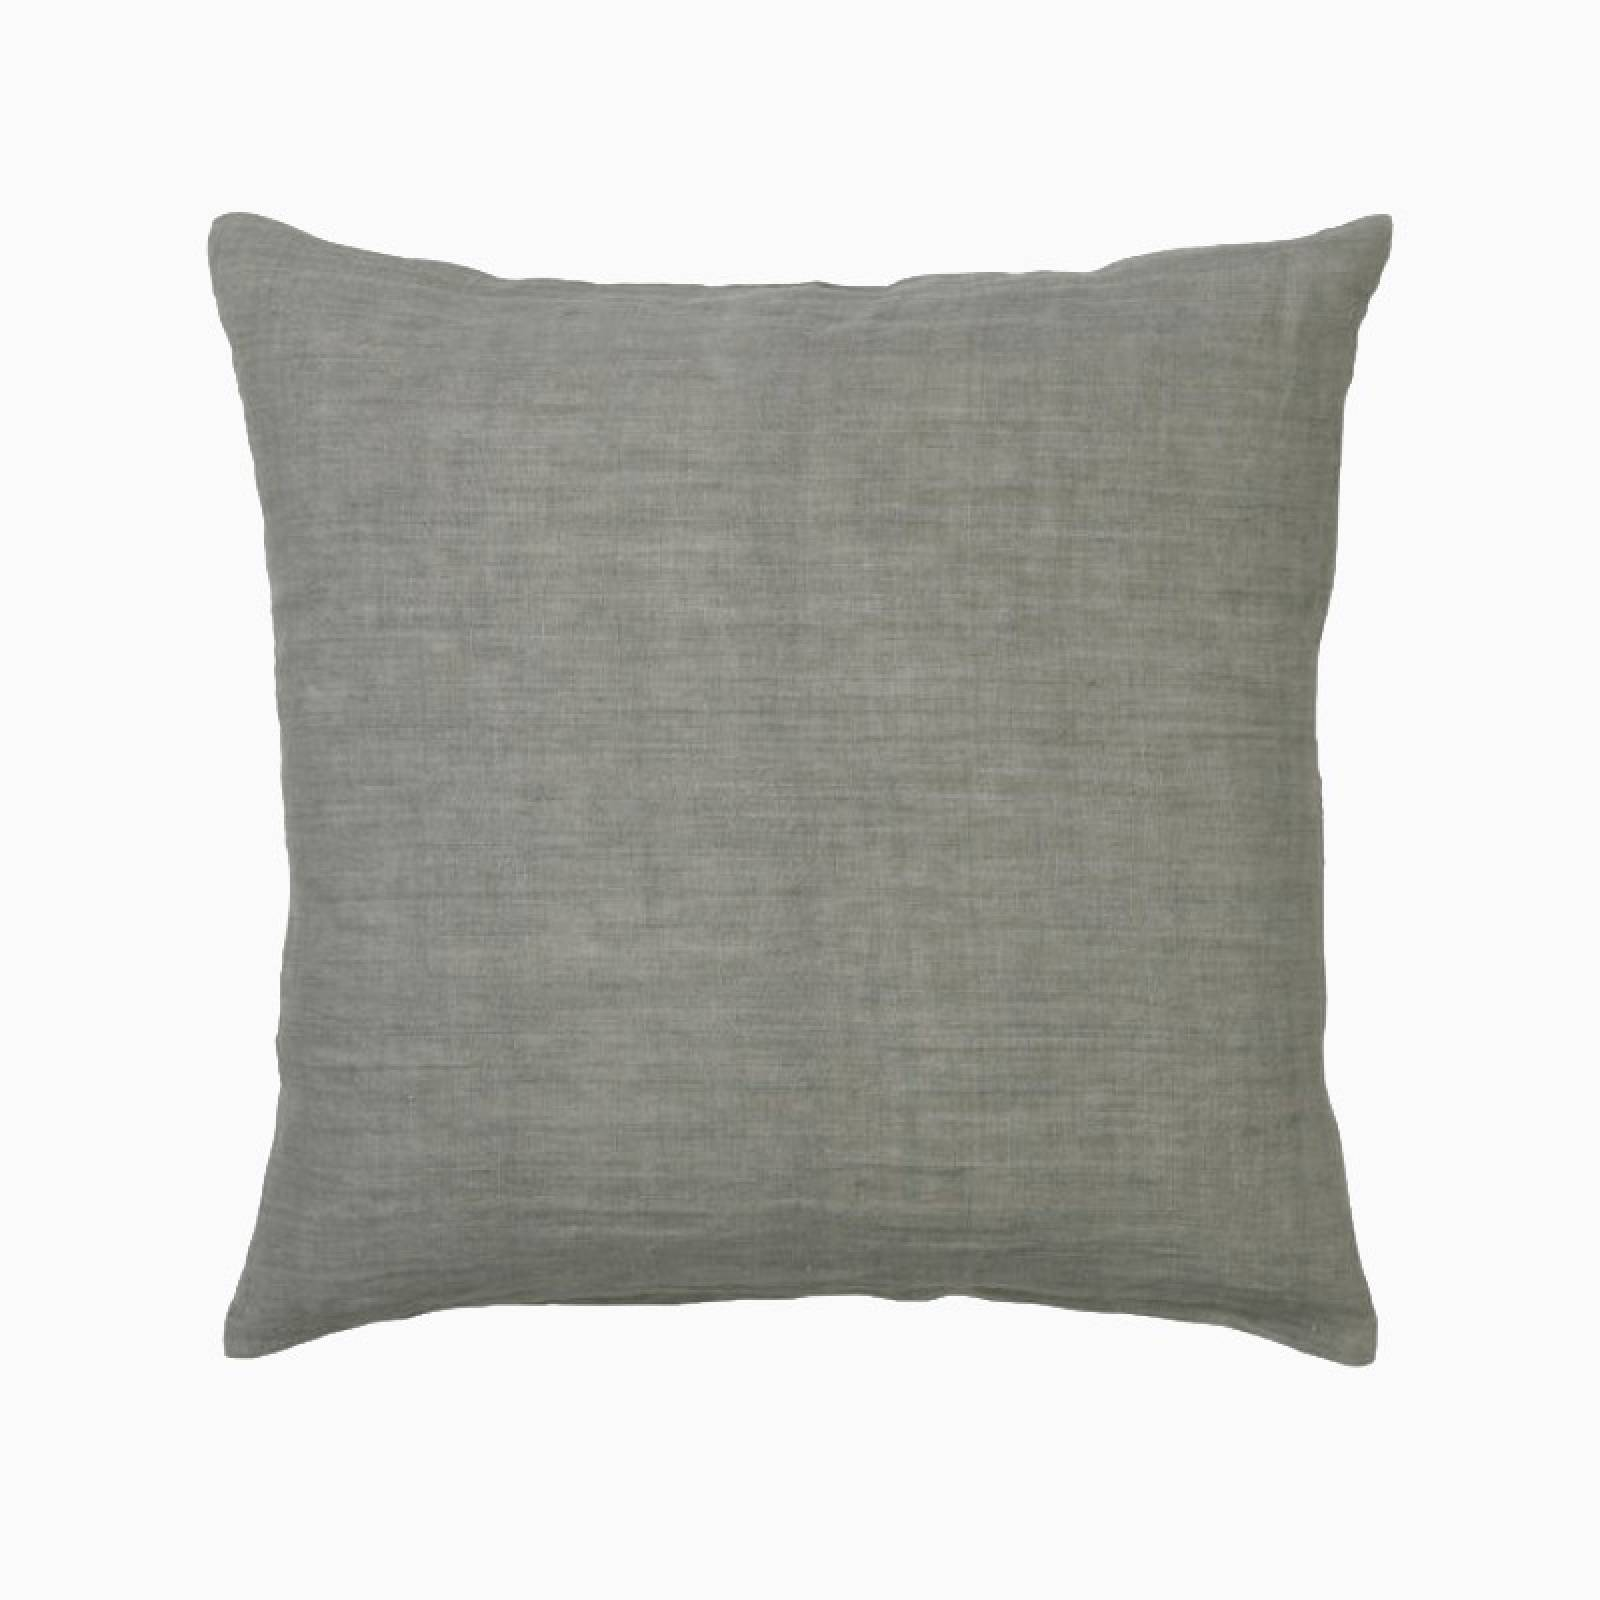 Square Linen Cushion In Kale Green